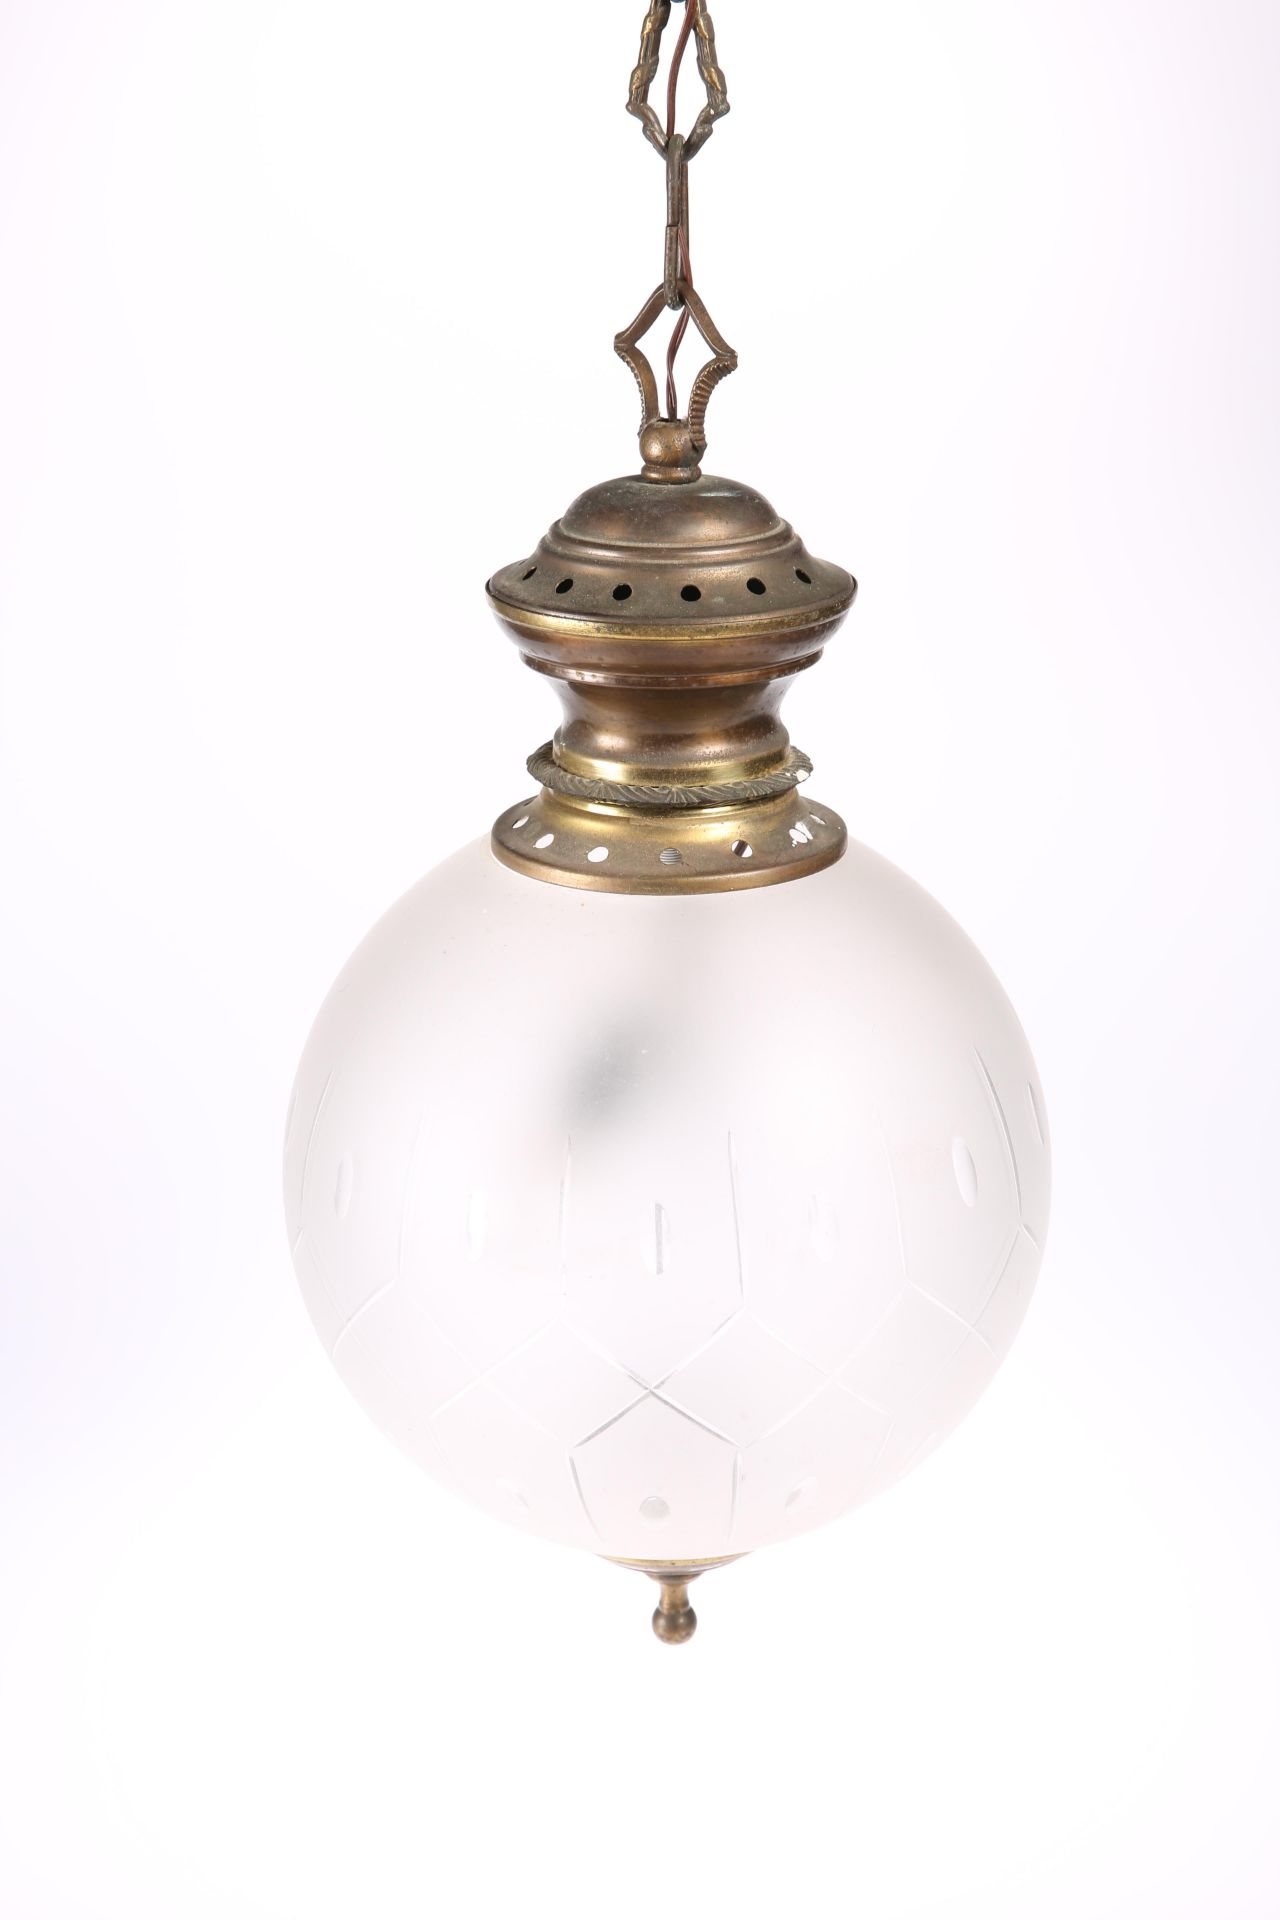 AN EARLY 20TH CENTURY BRASS AND FROSTED GLASS PENDANT CEILING LIGHT, the globular shade with oval